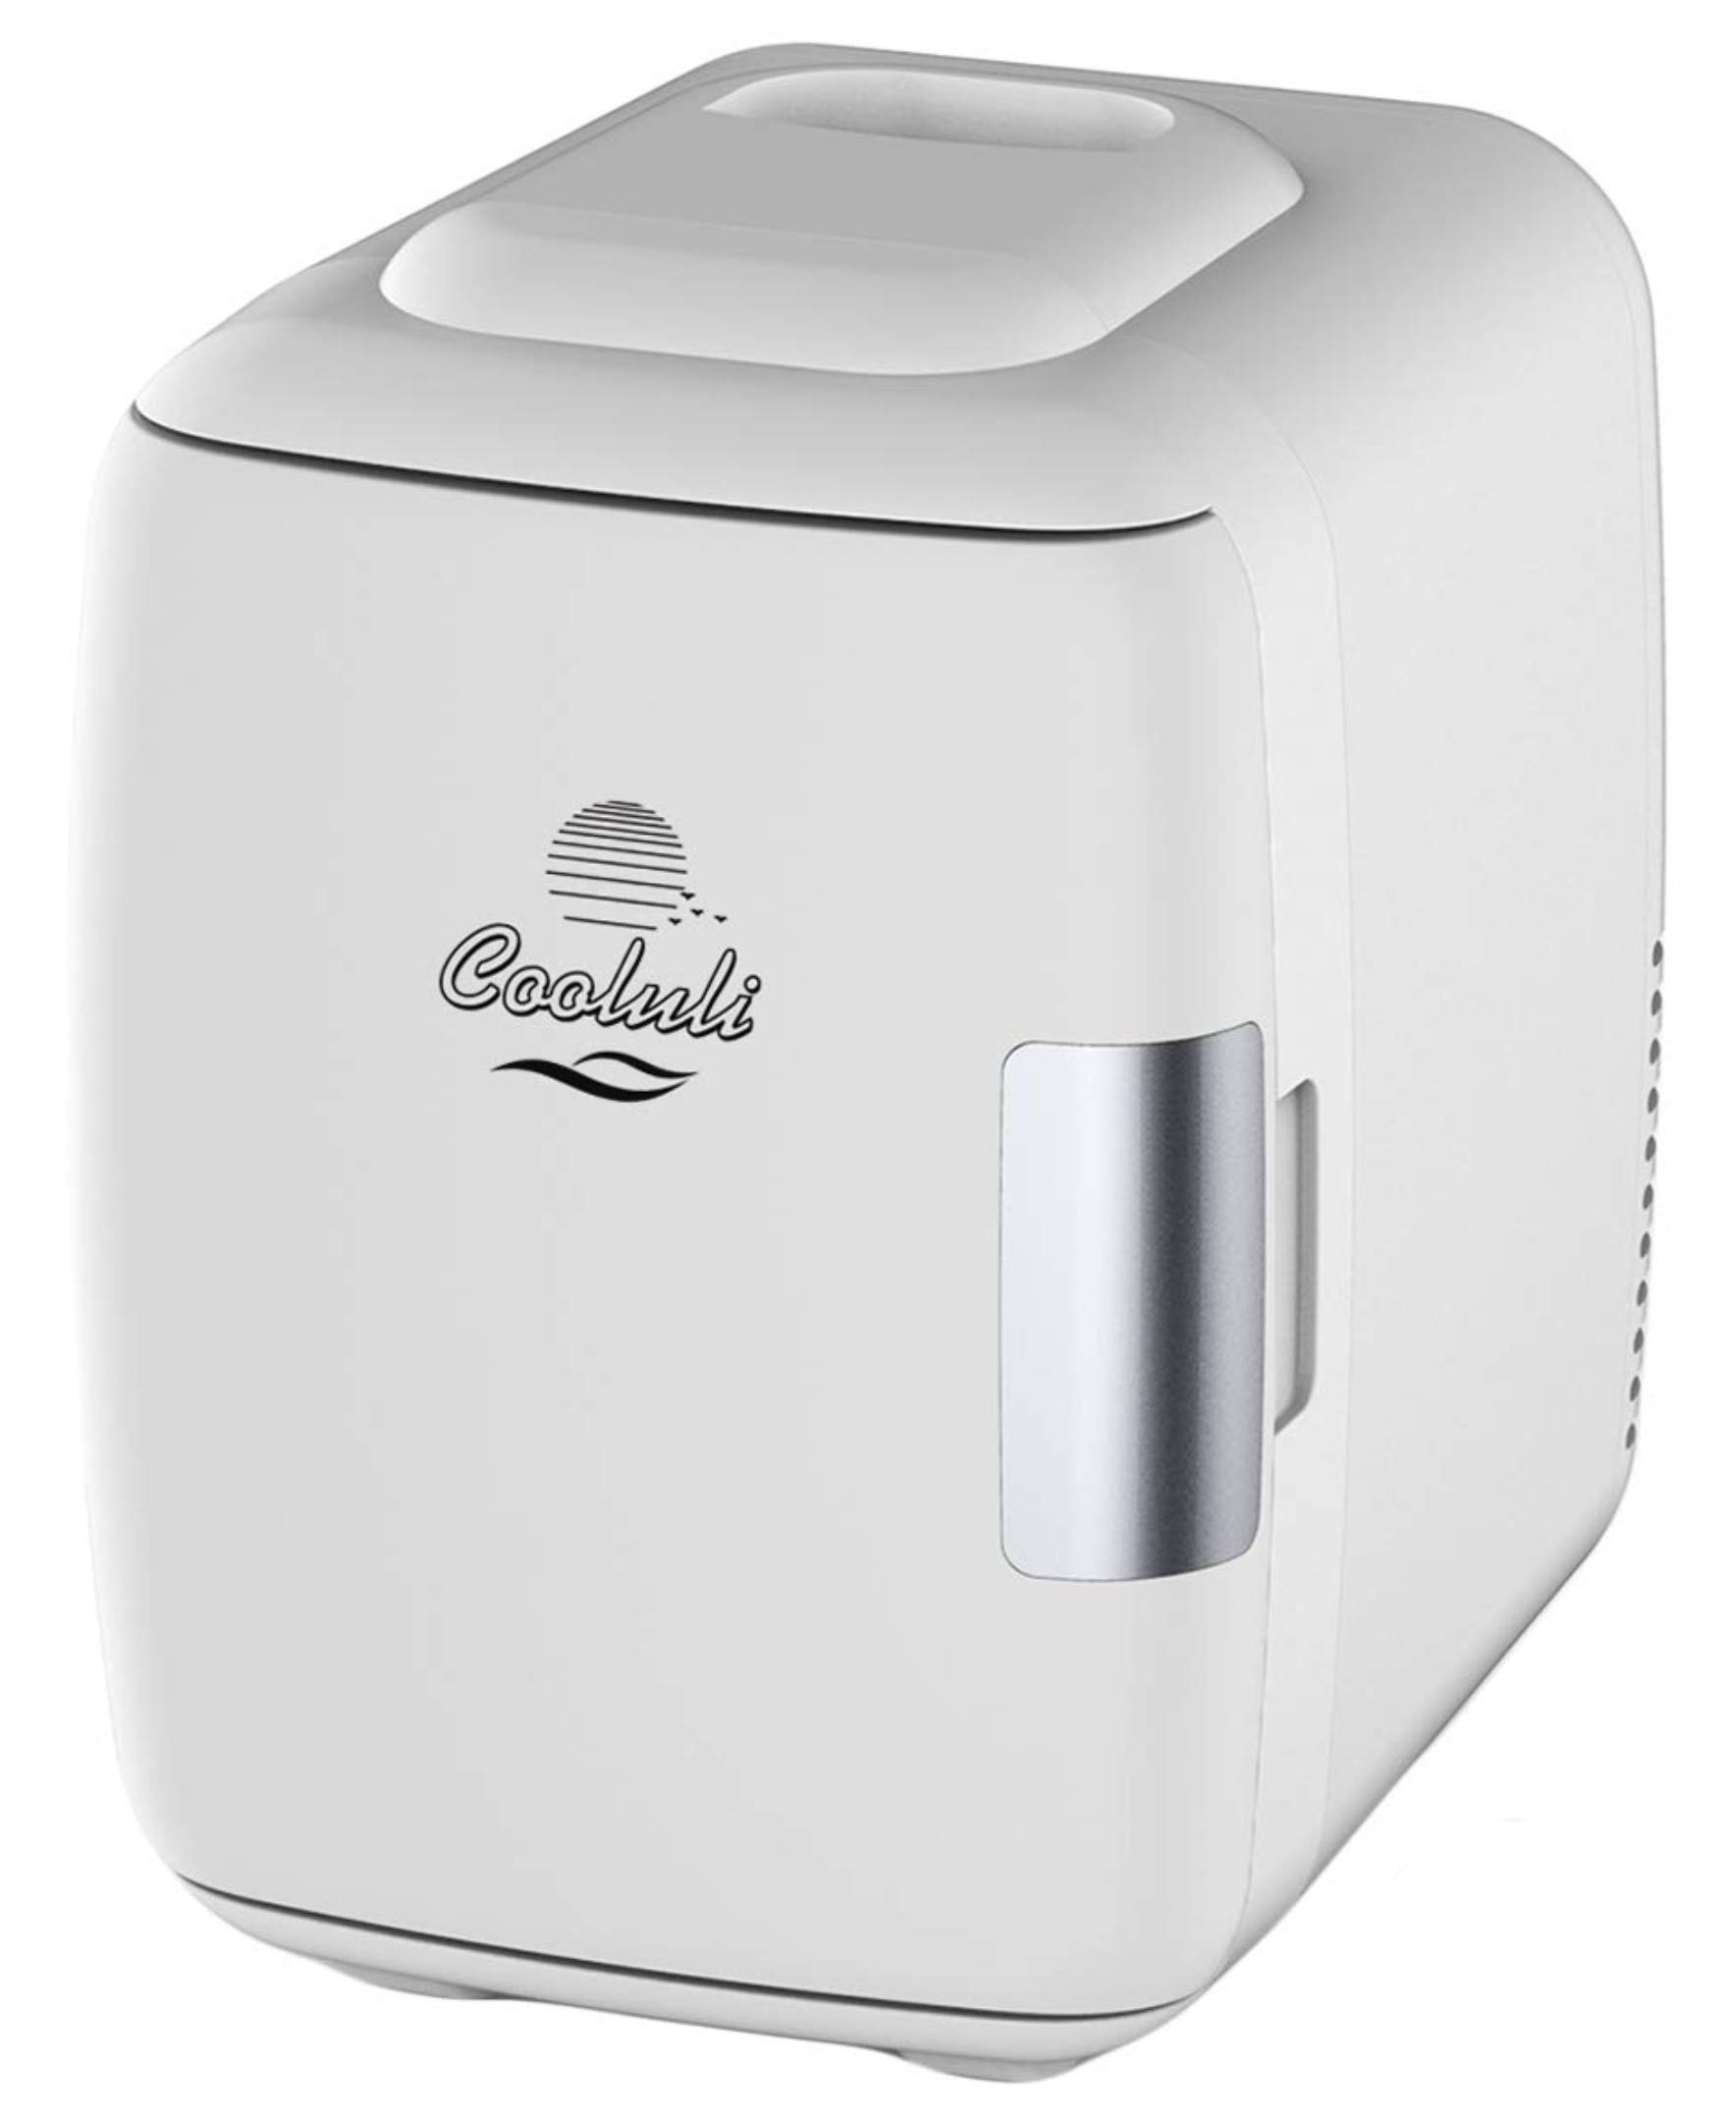 Cooluli Mini Fridge Electric Cooler and Warmer (4 Liter / 6 Can): AC/DC Portable Thermoelectric System w/ Exclusive On the Go USB Power Bank Option (White) by Cooluli